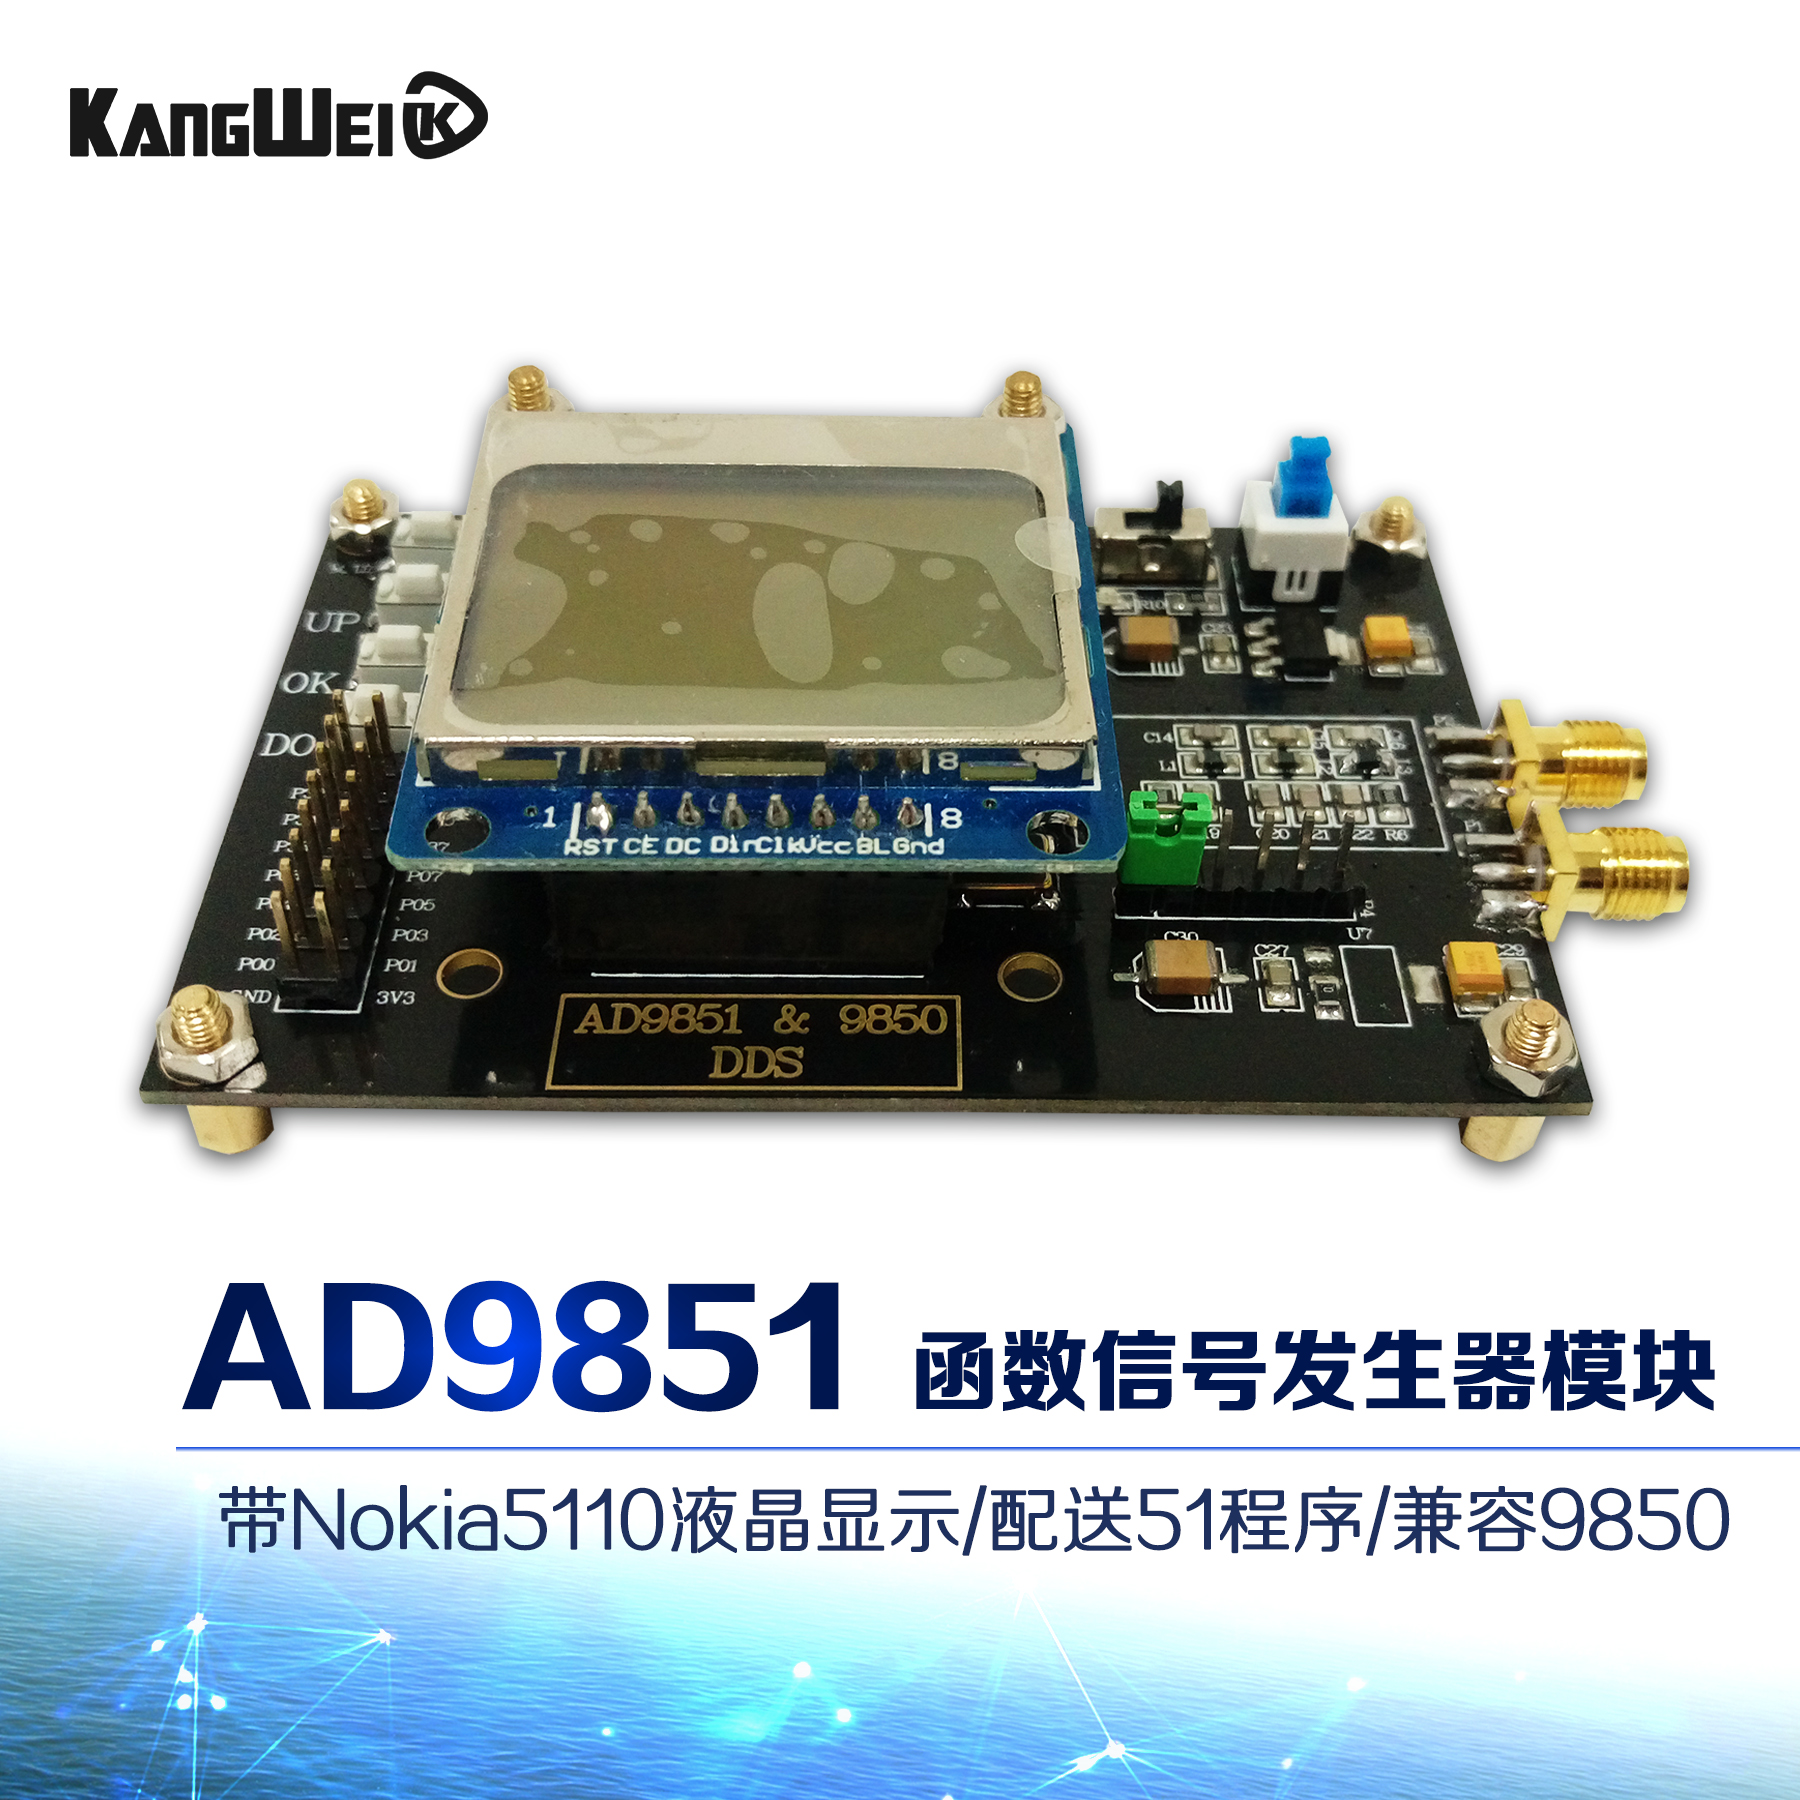 AD9851 module, DDS function, signal generator, program compatible, 9850 band Nokia5110 an incremental graft parsing based program development environment